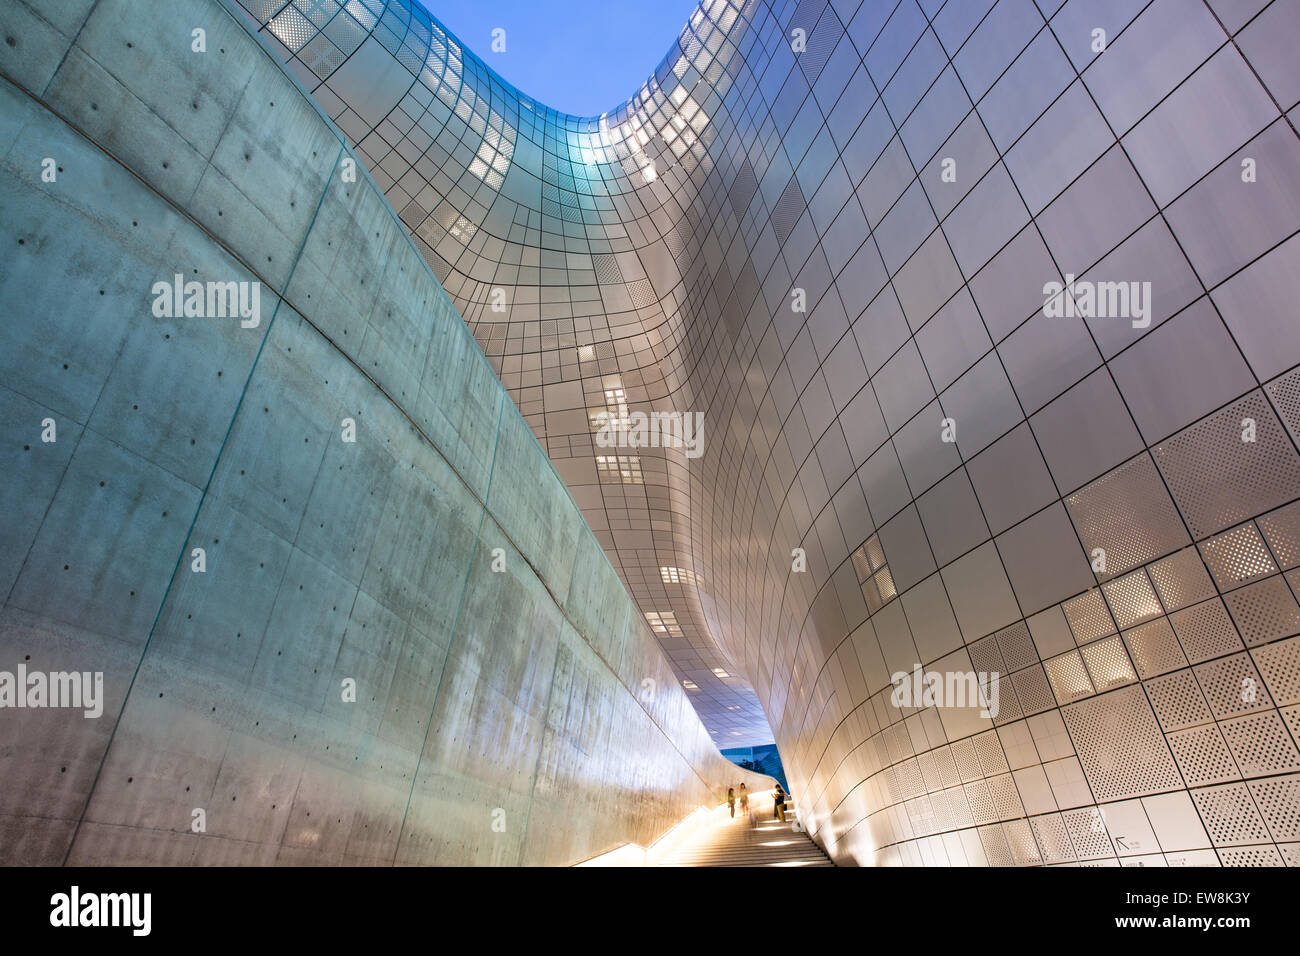 Seoul, Republic of Korea - 15 August 2014: Modern architecture of Dongdaemun Plaza at night on August 15, 2014, - Stock Image